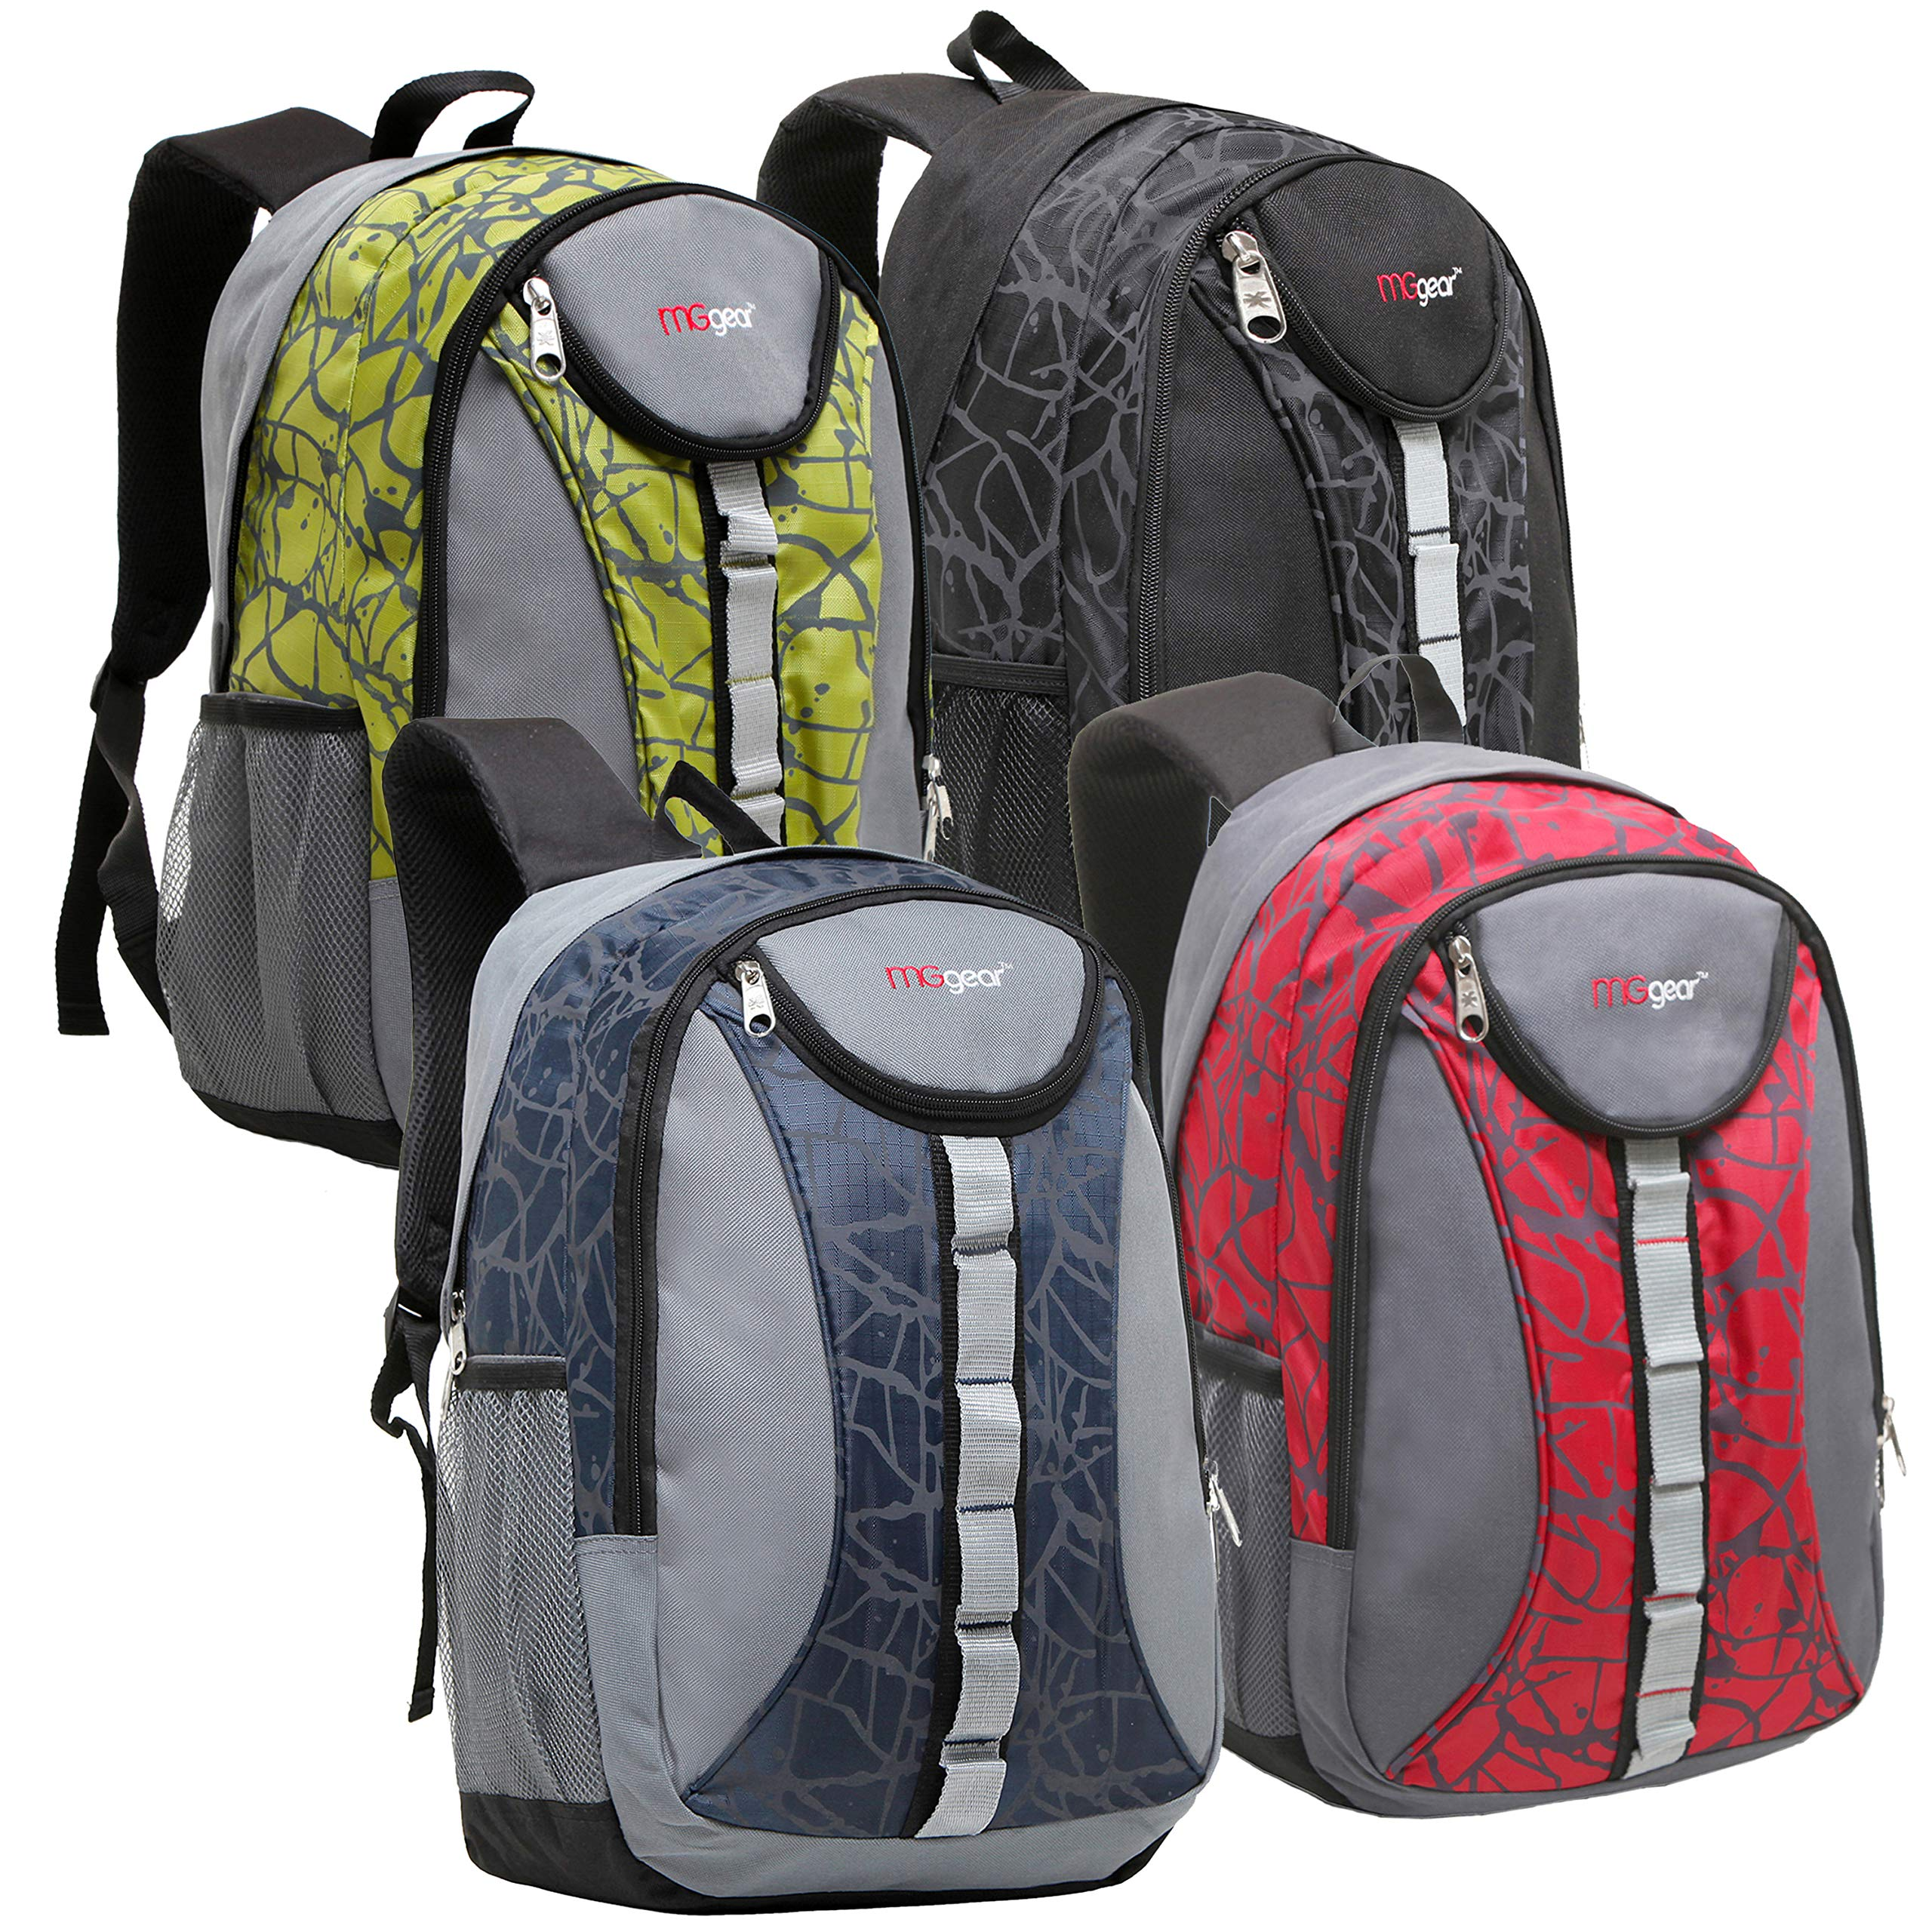 Wholesale 18 Inch Heavy Duty Student School Backpack, Bulk Case of 20 Assorted Colors by MGgear